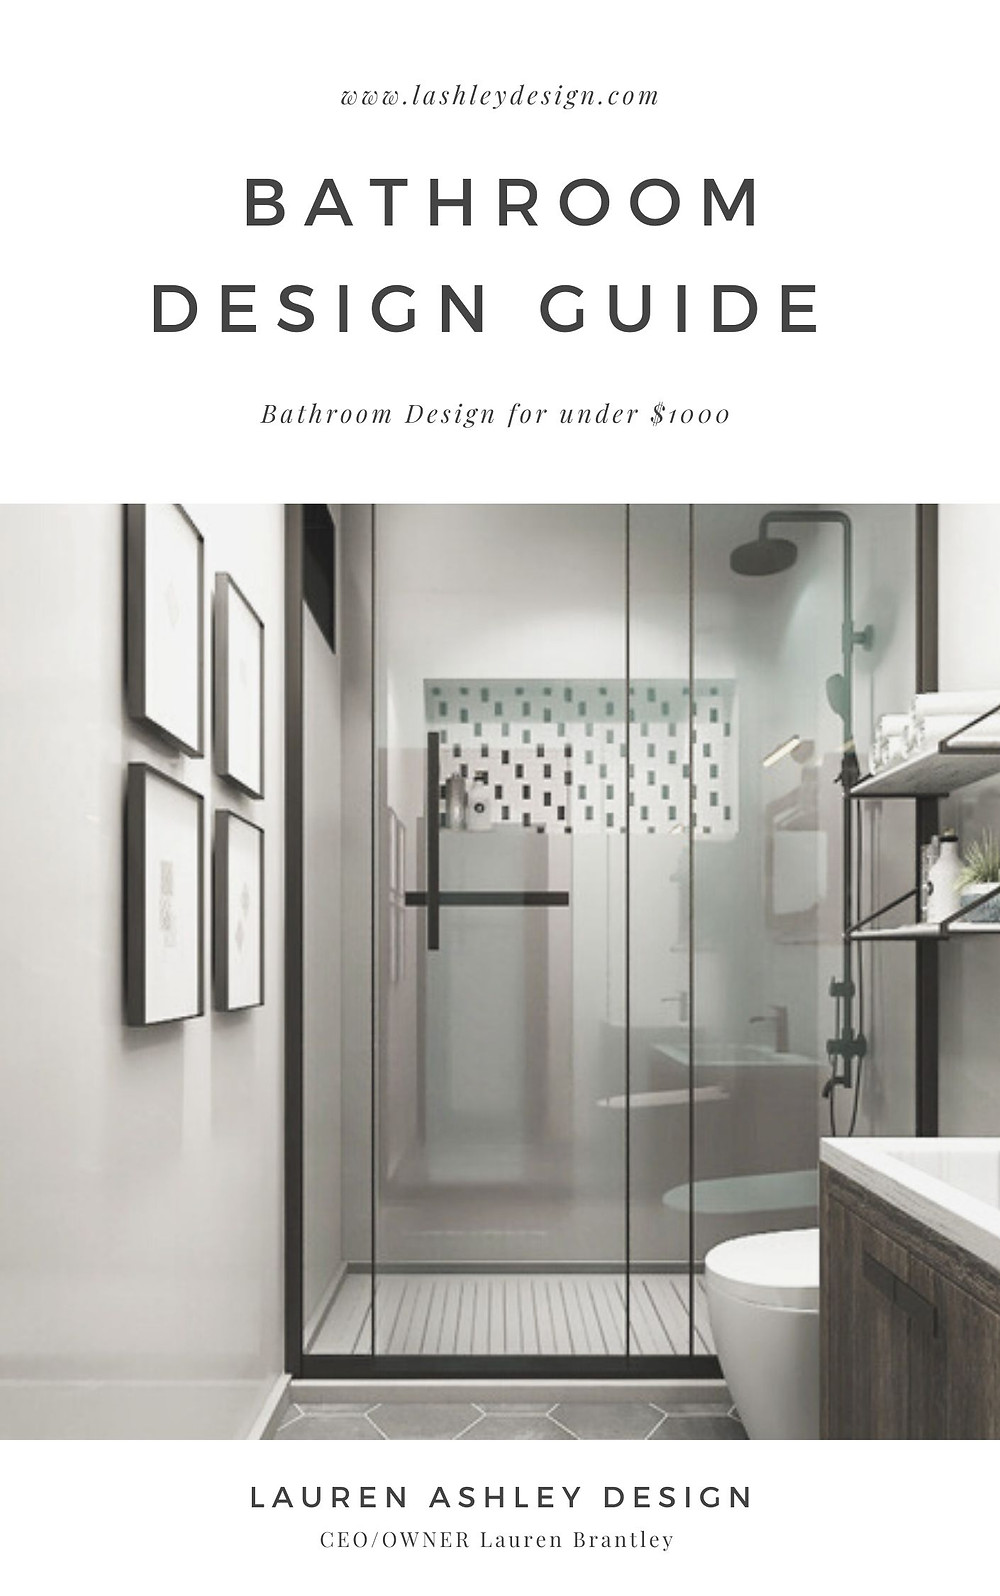 In the guide I teach you how to teach you how to apply the wallpaper and tile, also I provide you with a shopping list and guide! Bring to you all you need to transform your space into your dream modern bathroom. Grab it now!   If you need any help with your bathroom please contact me today